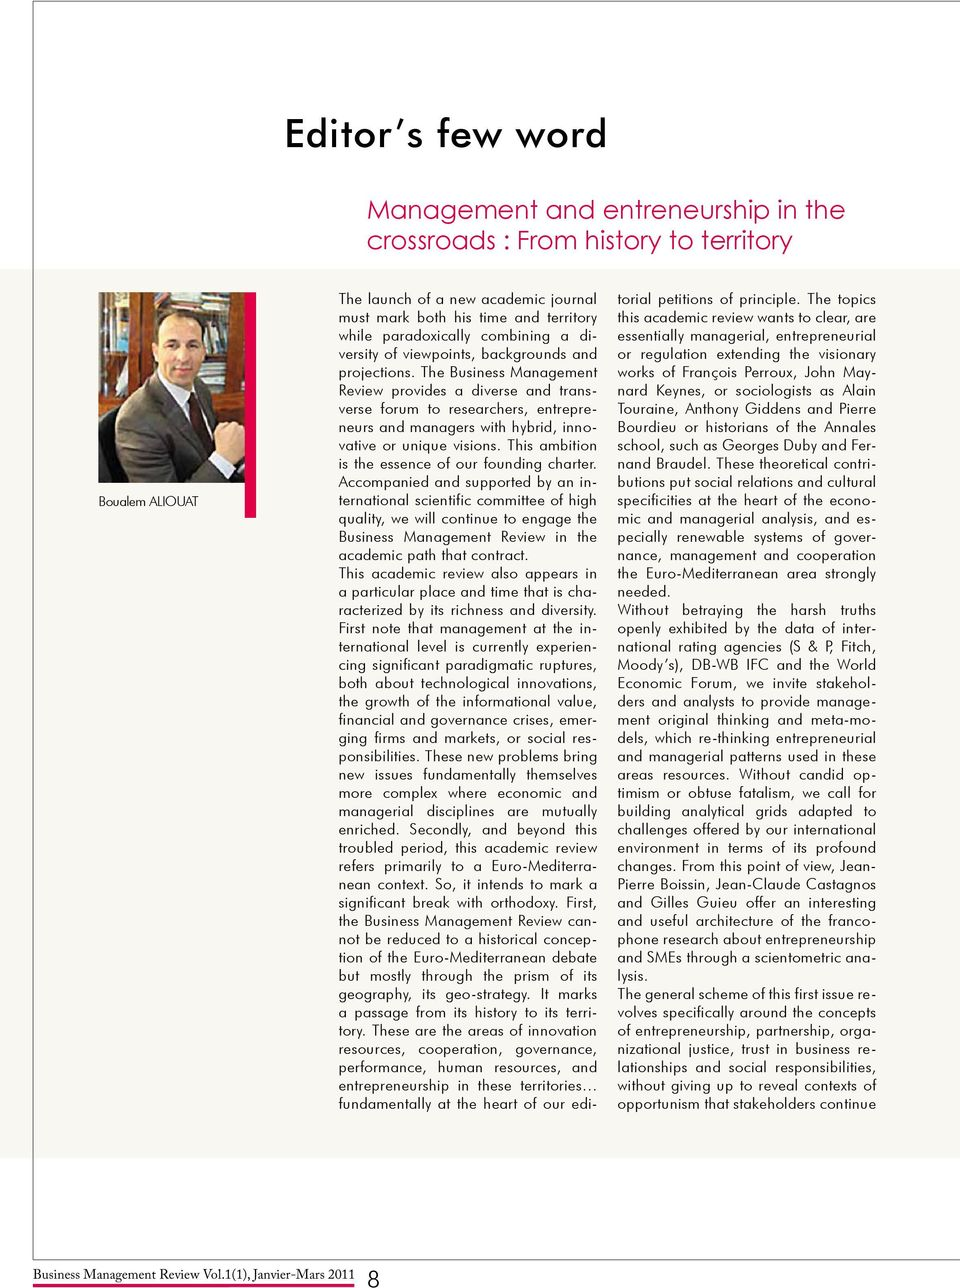 The Business Management Review provides a diverse and transverse forum to researchers, entrepreneurs and managers with hybrid, innovative or unique visions.